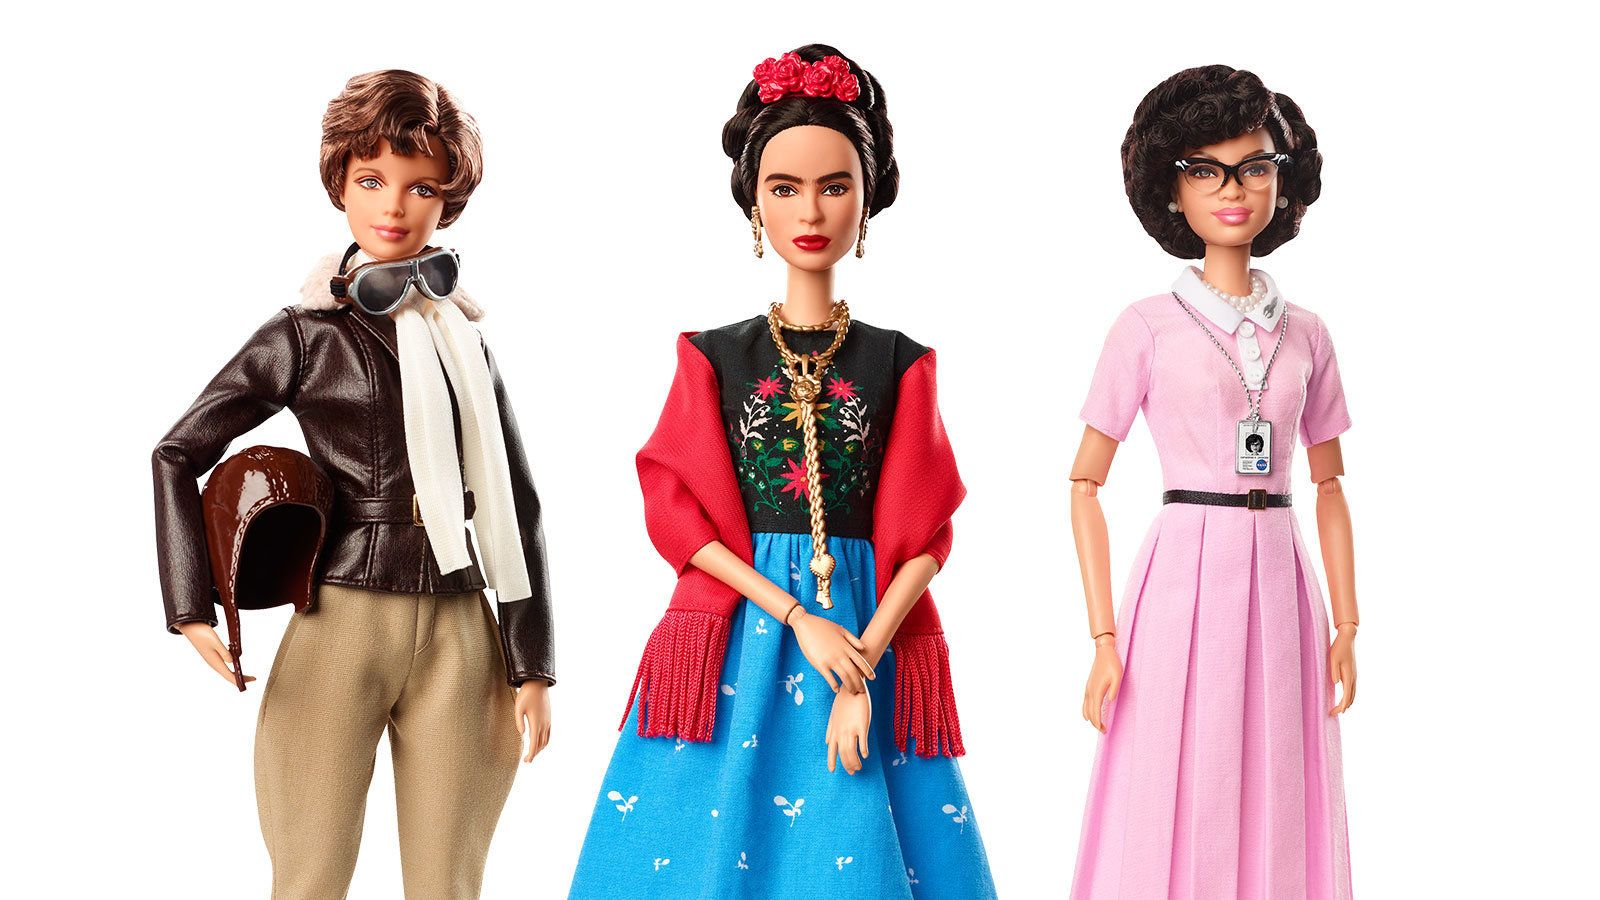 Frida Kahlo And Other Historic Women Are Being Made Into Barbies